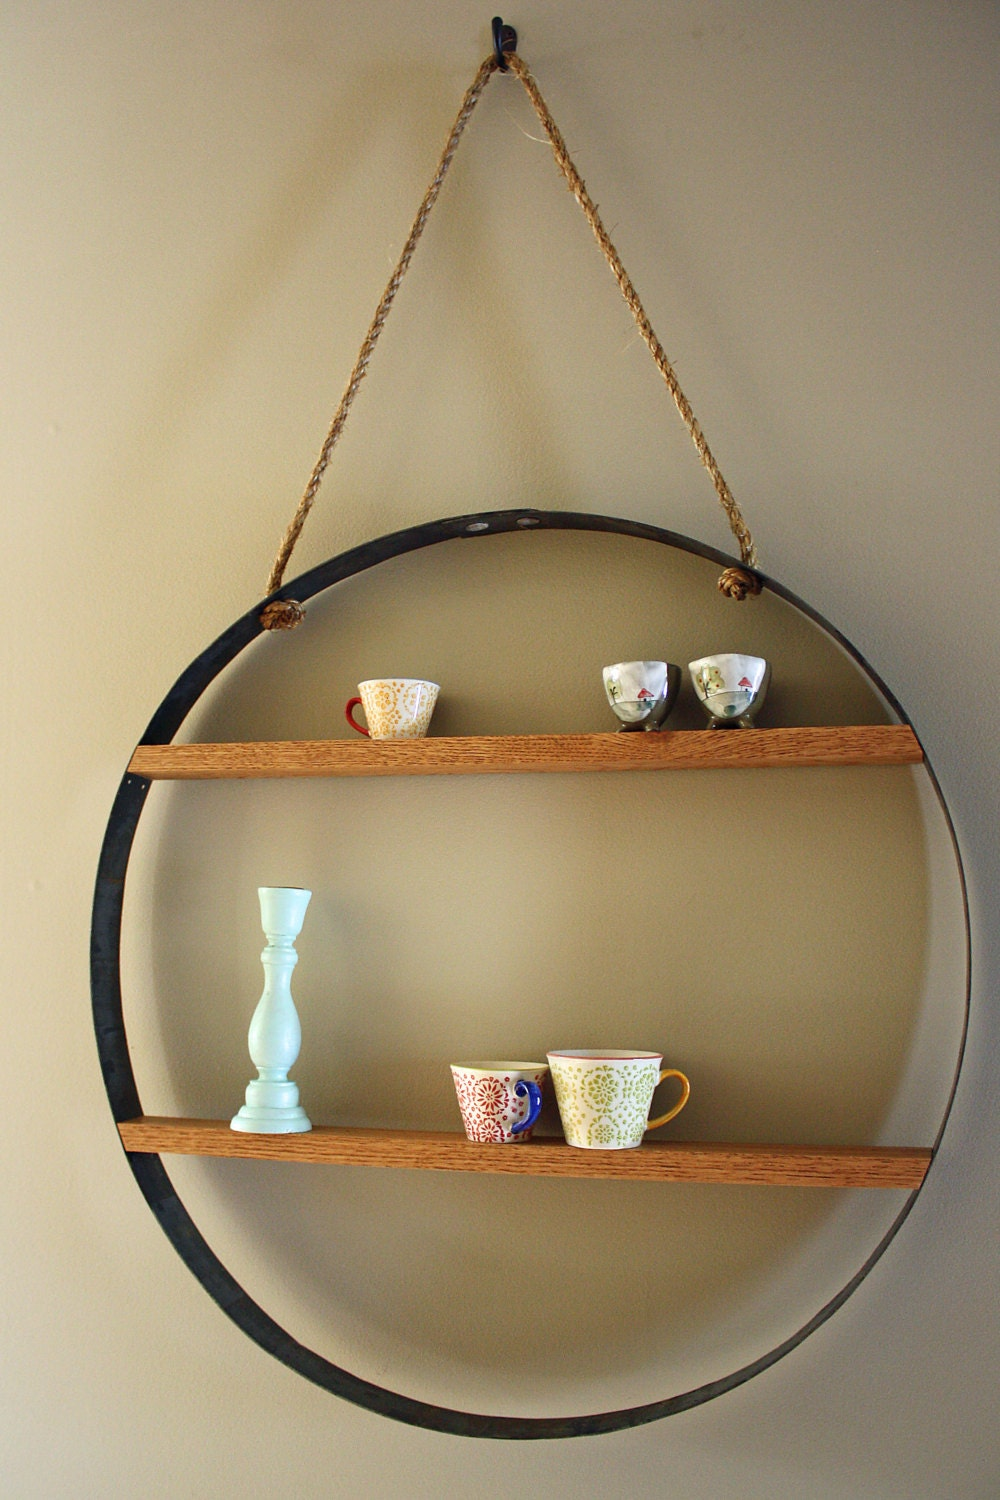 Whiskey Barrel Hoop Hanging Wall Shelf